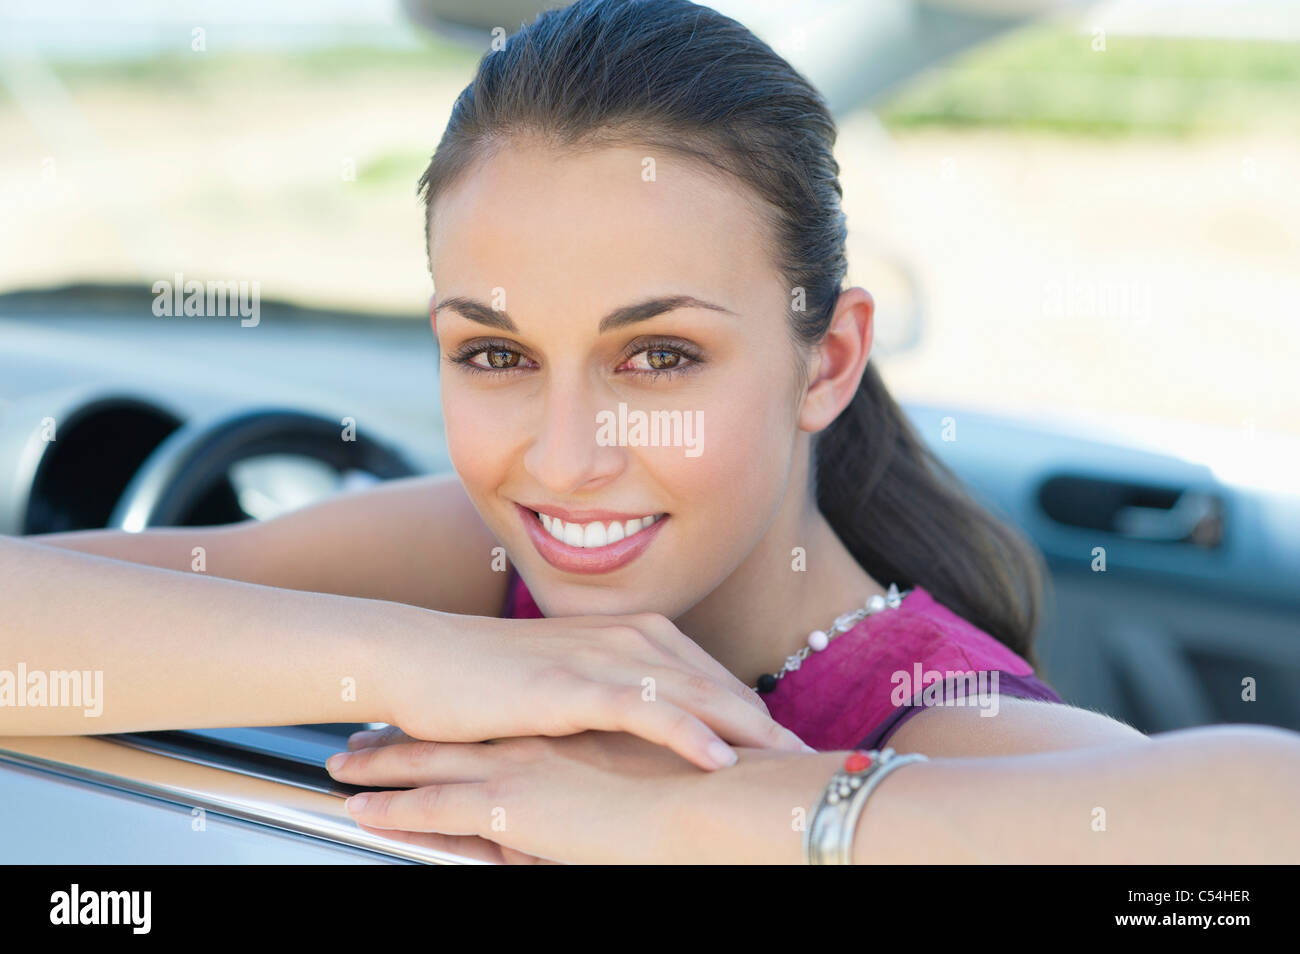 Young woman leaning on car window - Stock Image